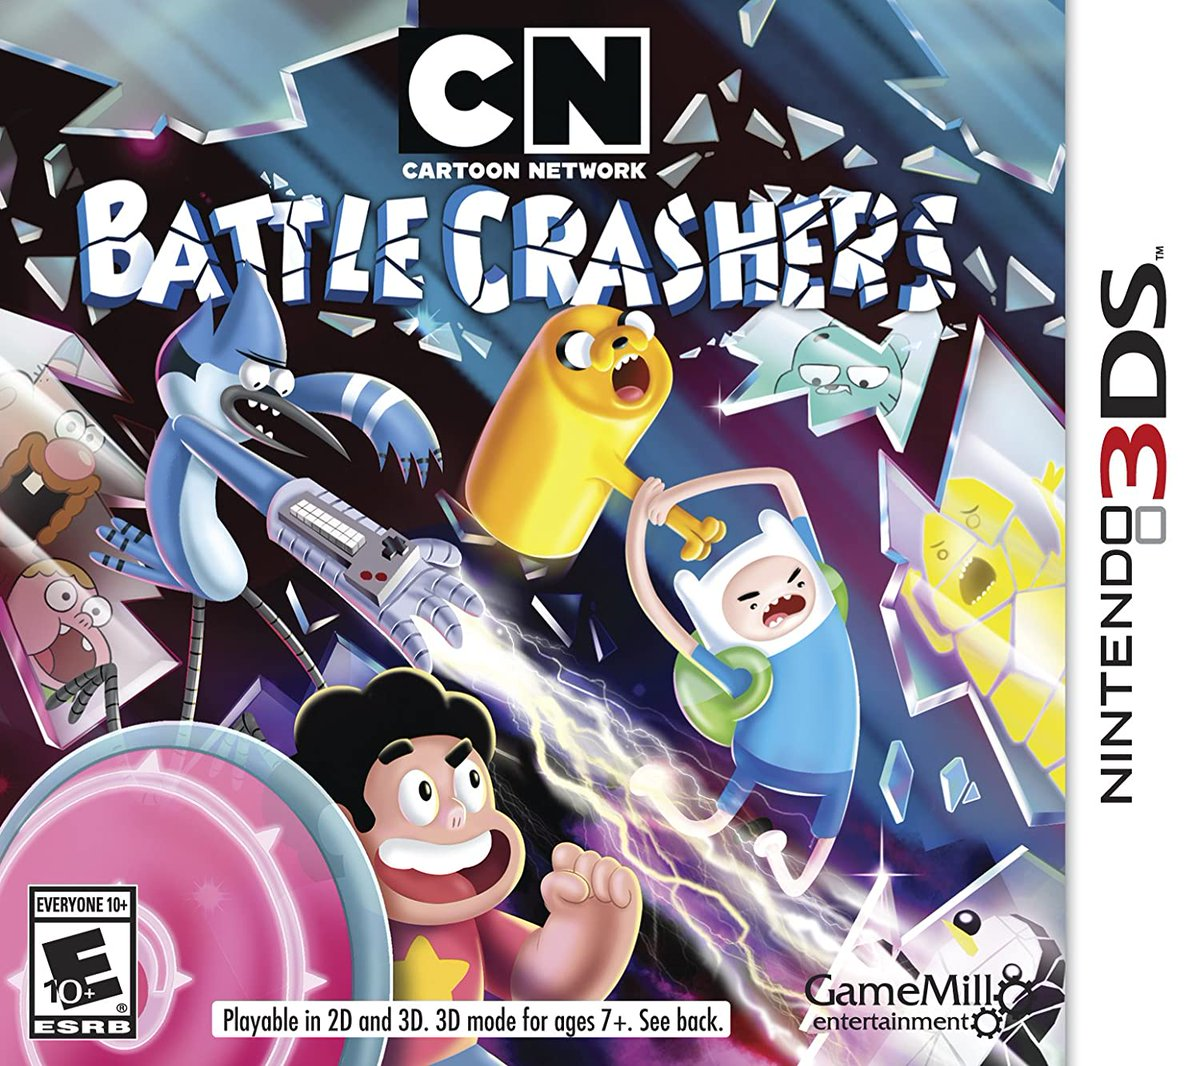 the fact that every show featured in this game is now finished makes me very uncomfortable.   #StevenUniverse #AdventureTime #RegularShow #Gumball